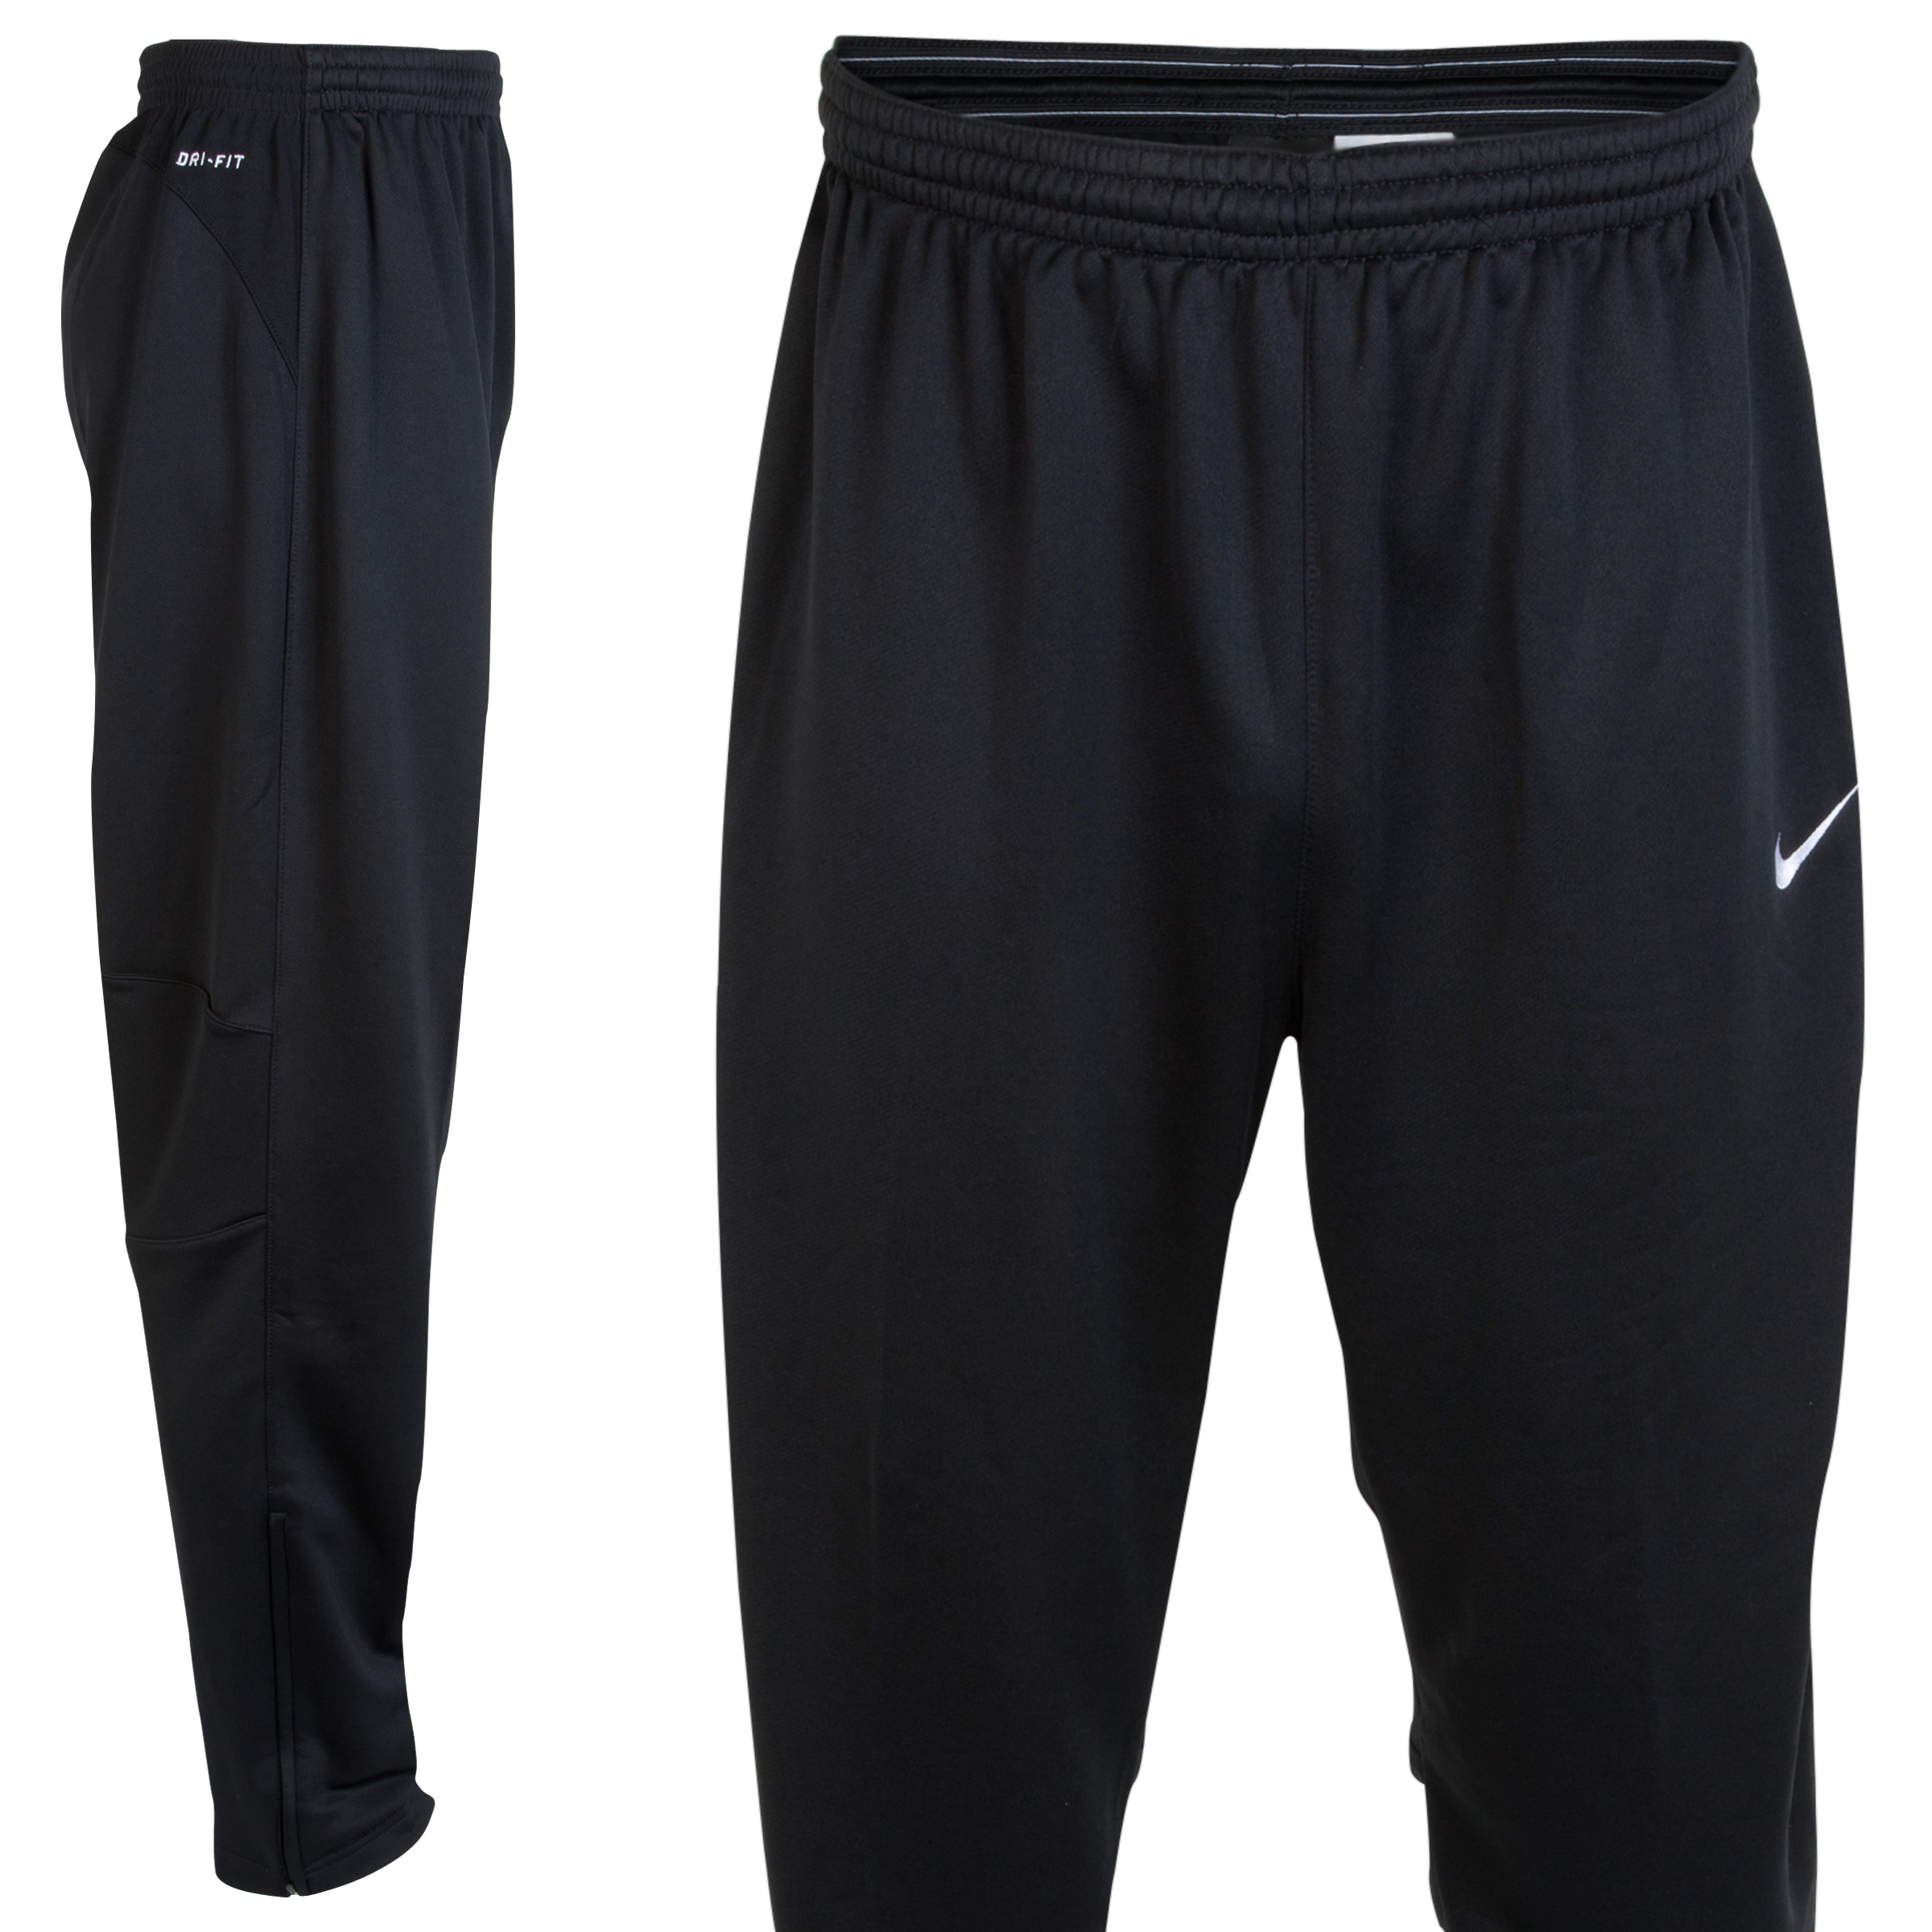 Nike Team Functional Training Pant - Black/White